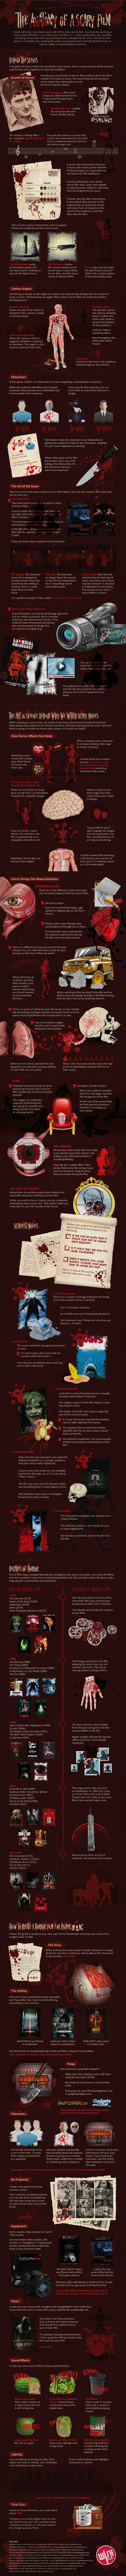 The Anatomy Of A Scary Film An Infographic Indiewire